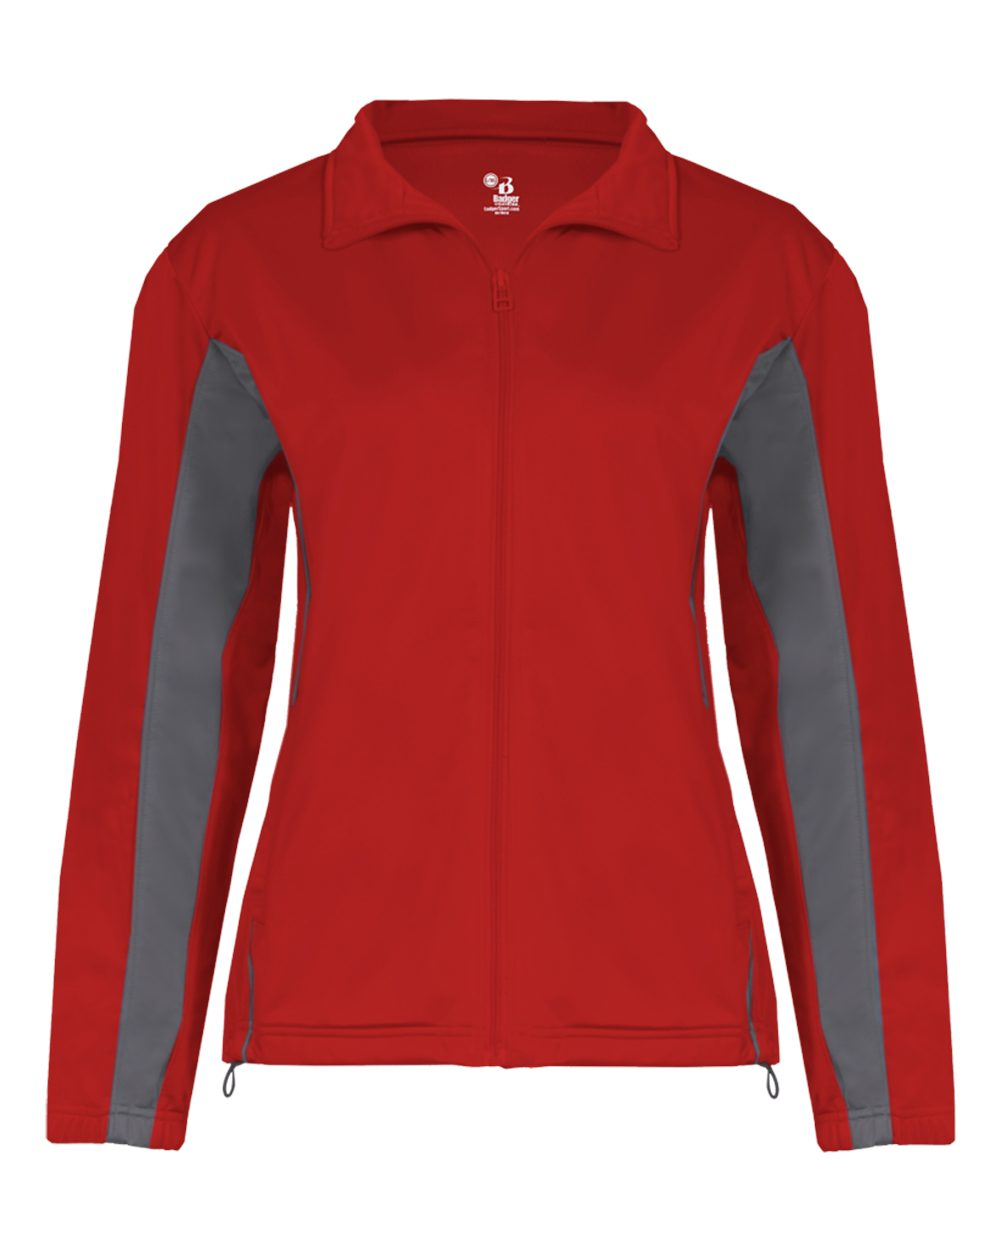 Custom sports fleece pullover